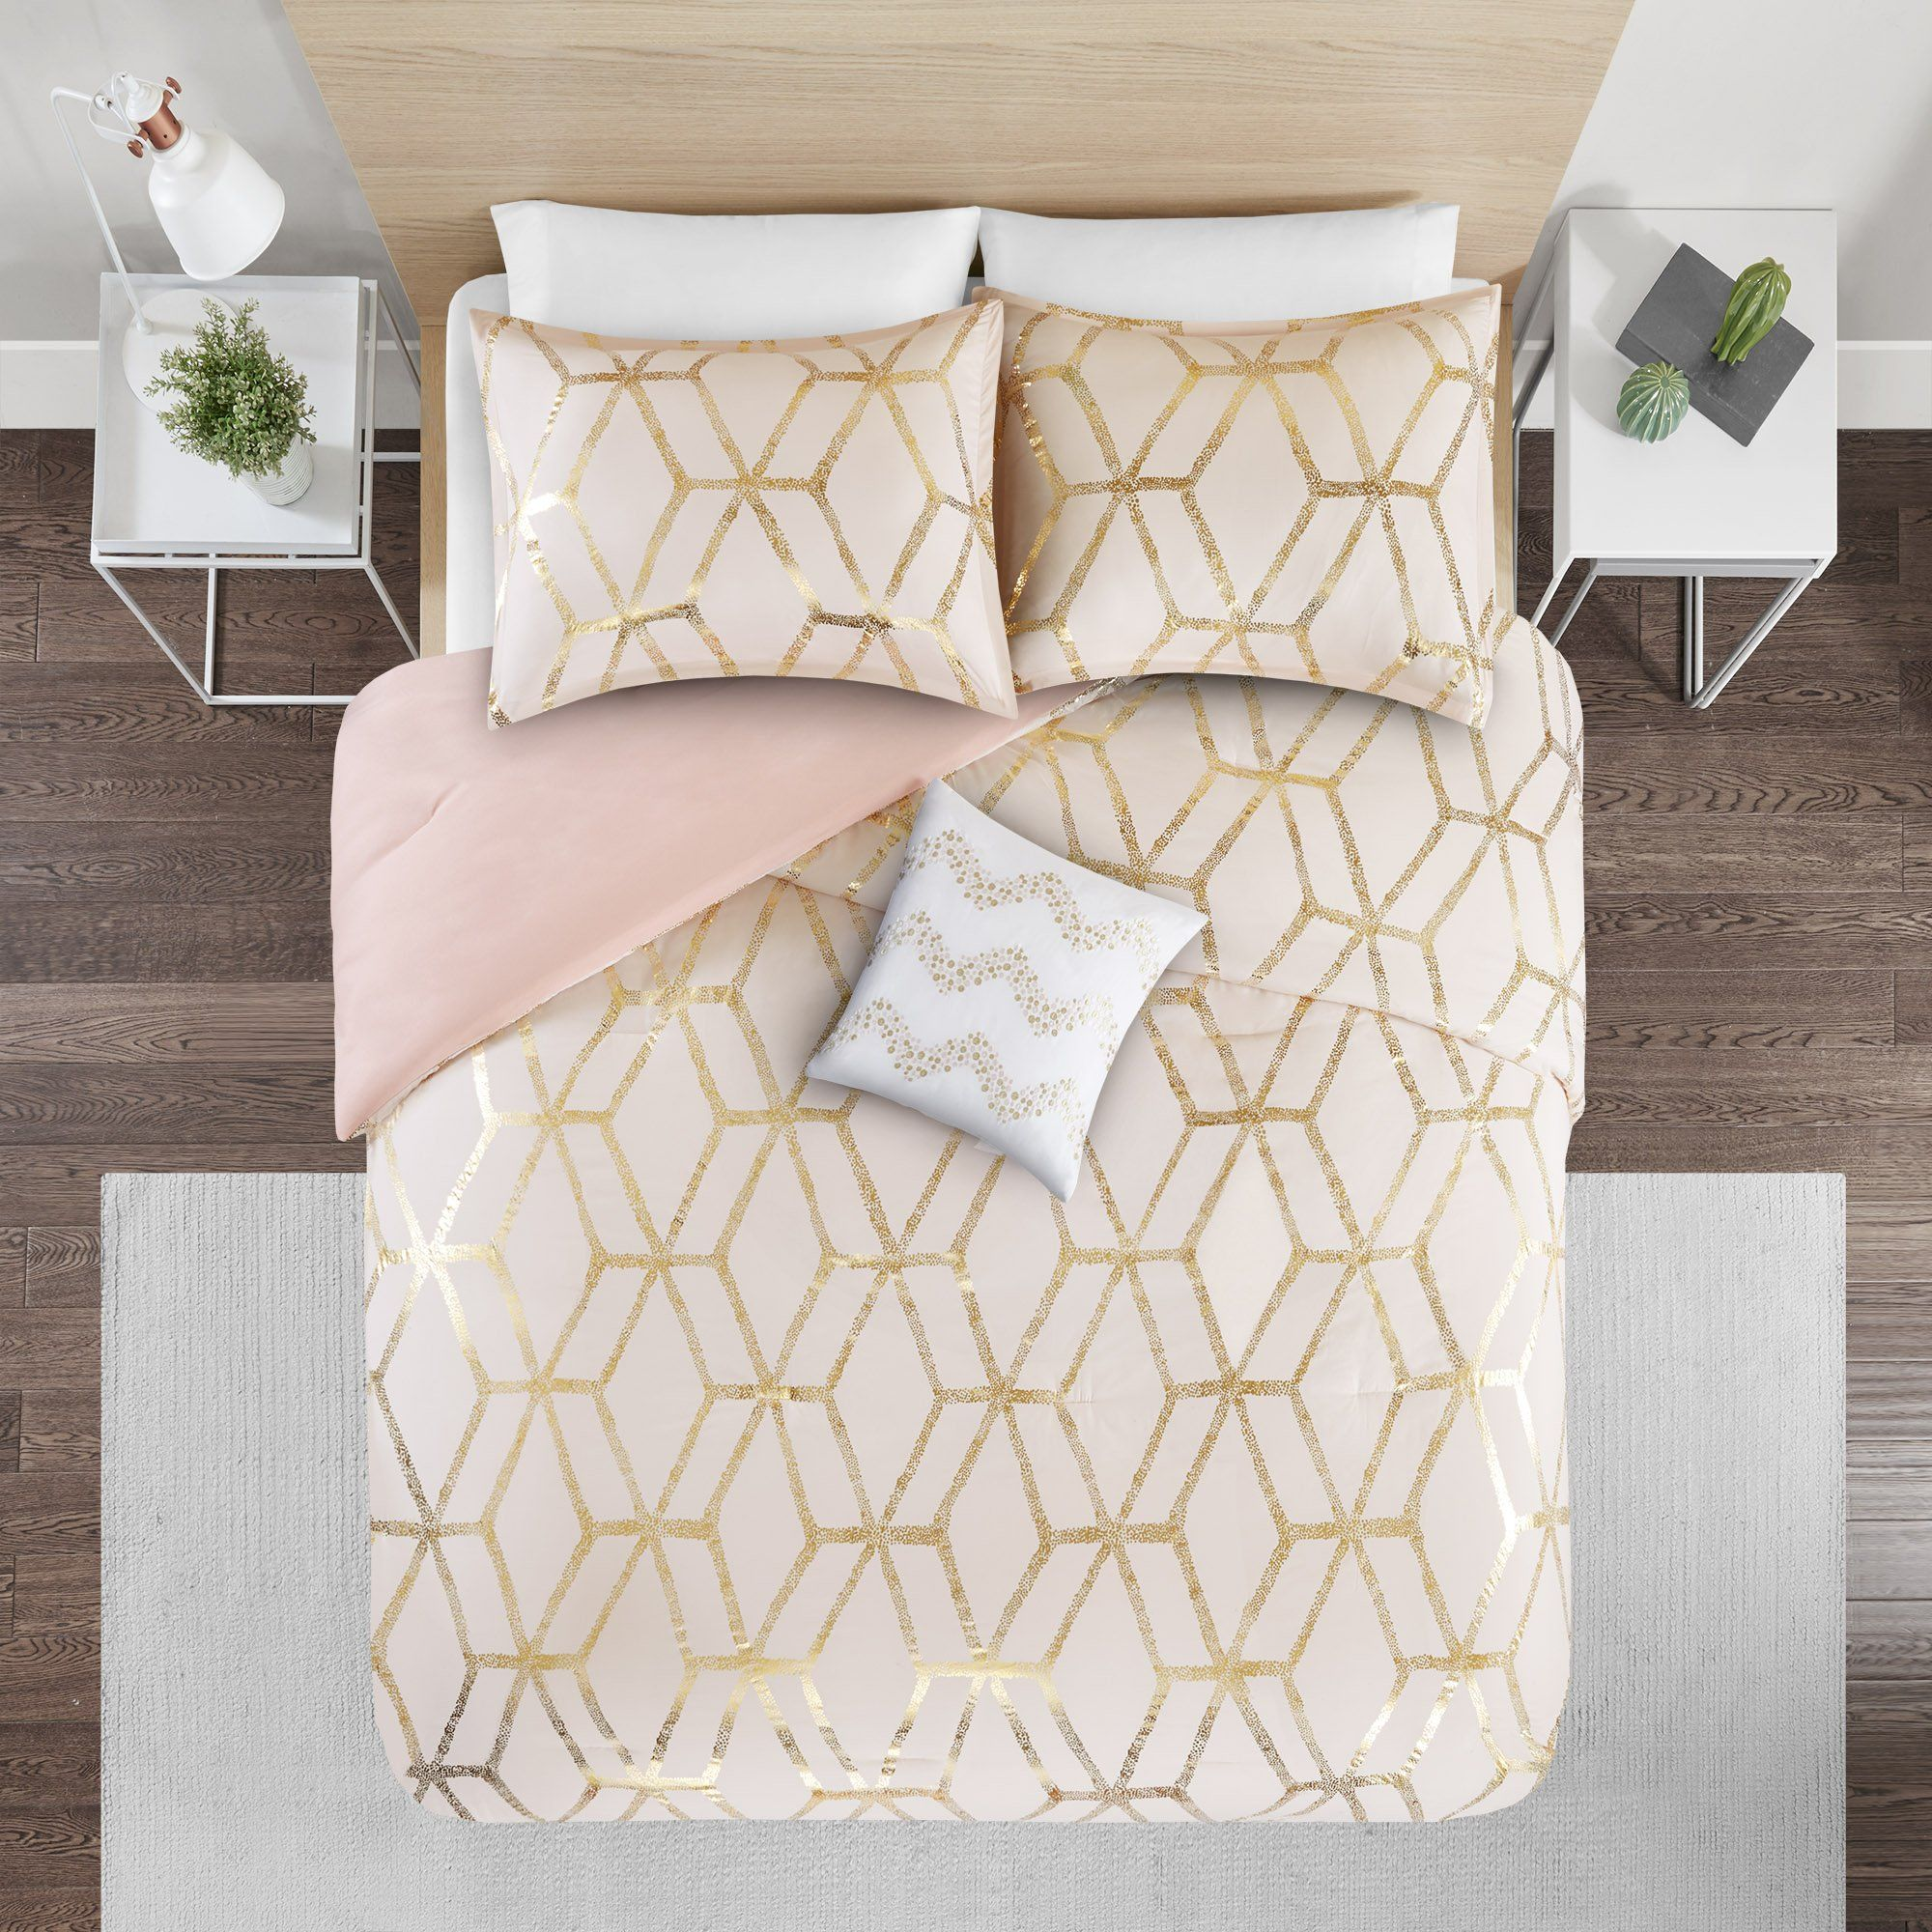 Comforter Set Twin Bedding Set Vivian 3 Piece Blush Pink Gold Geometric Metallic Print Hypoallergenic So Comforter Sets Hypoallergenic Bedding Twin Bed Sets